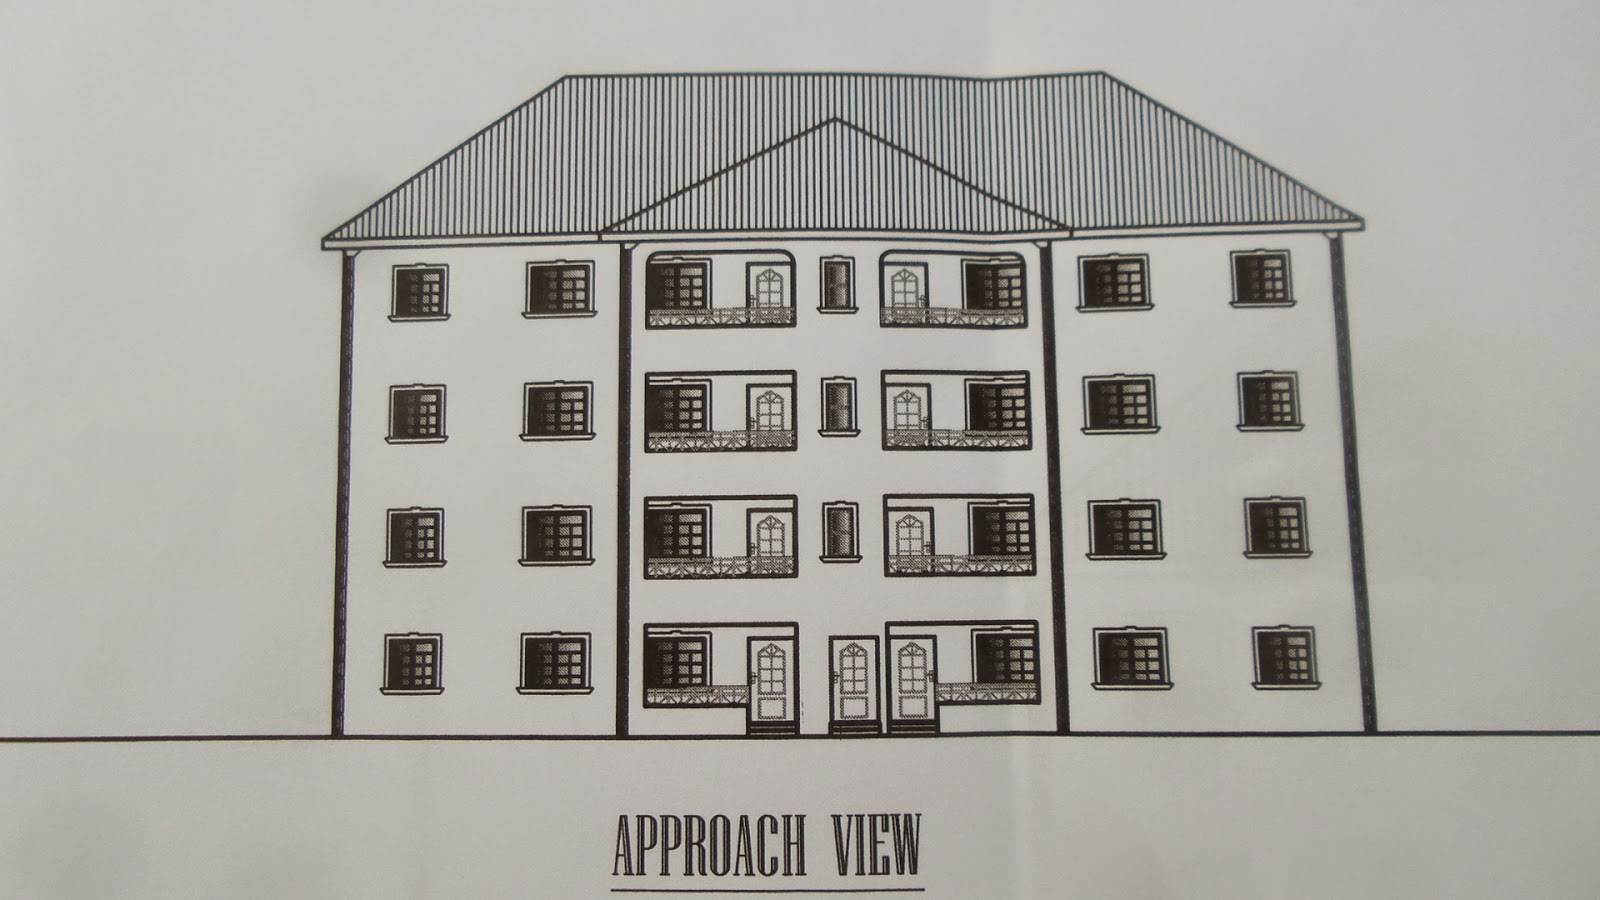 This is a building plan for 8 flats of 3 bedrooms